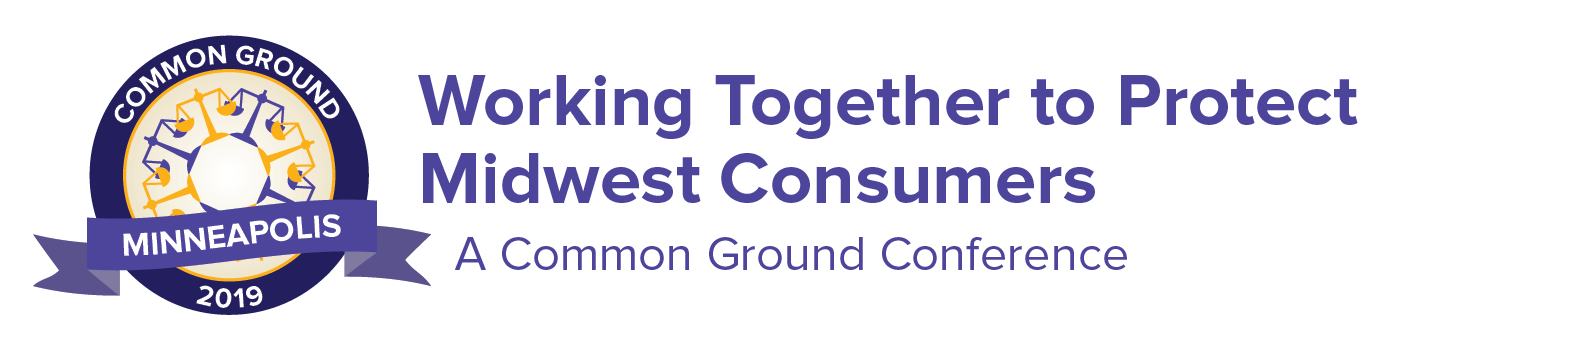 Working Together to Protect Midwest Consumers: A Common Ground Conference